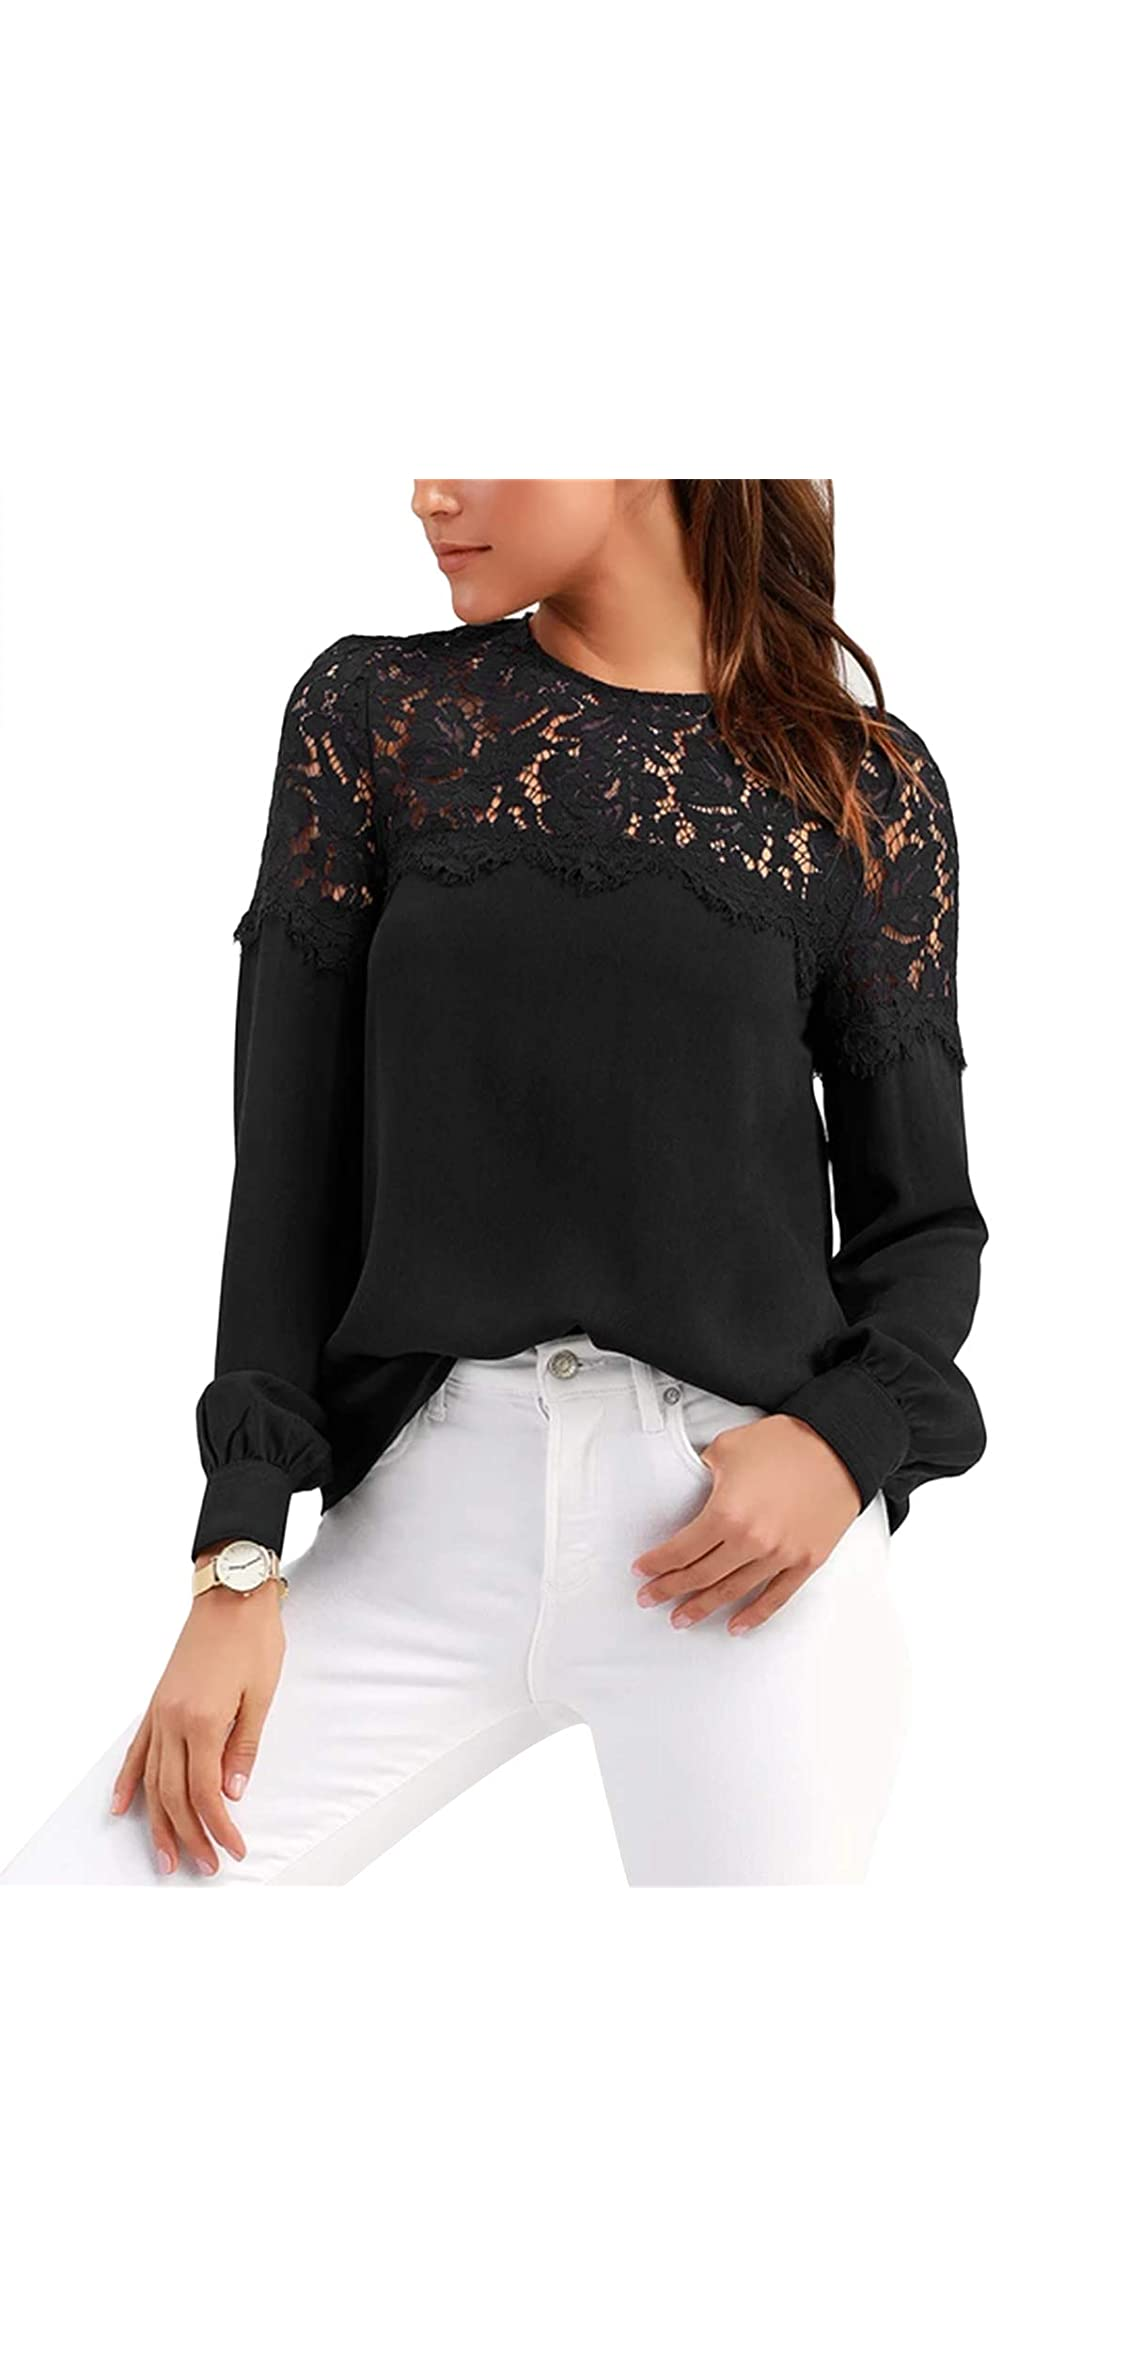 Womens Lace Blouses Tops Long Sleeve Botton Down Shirts